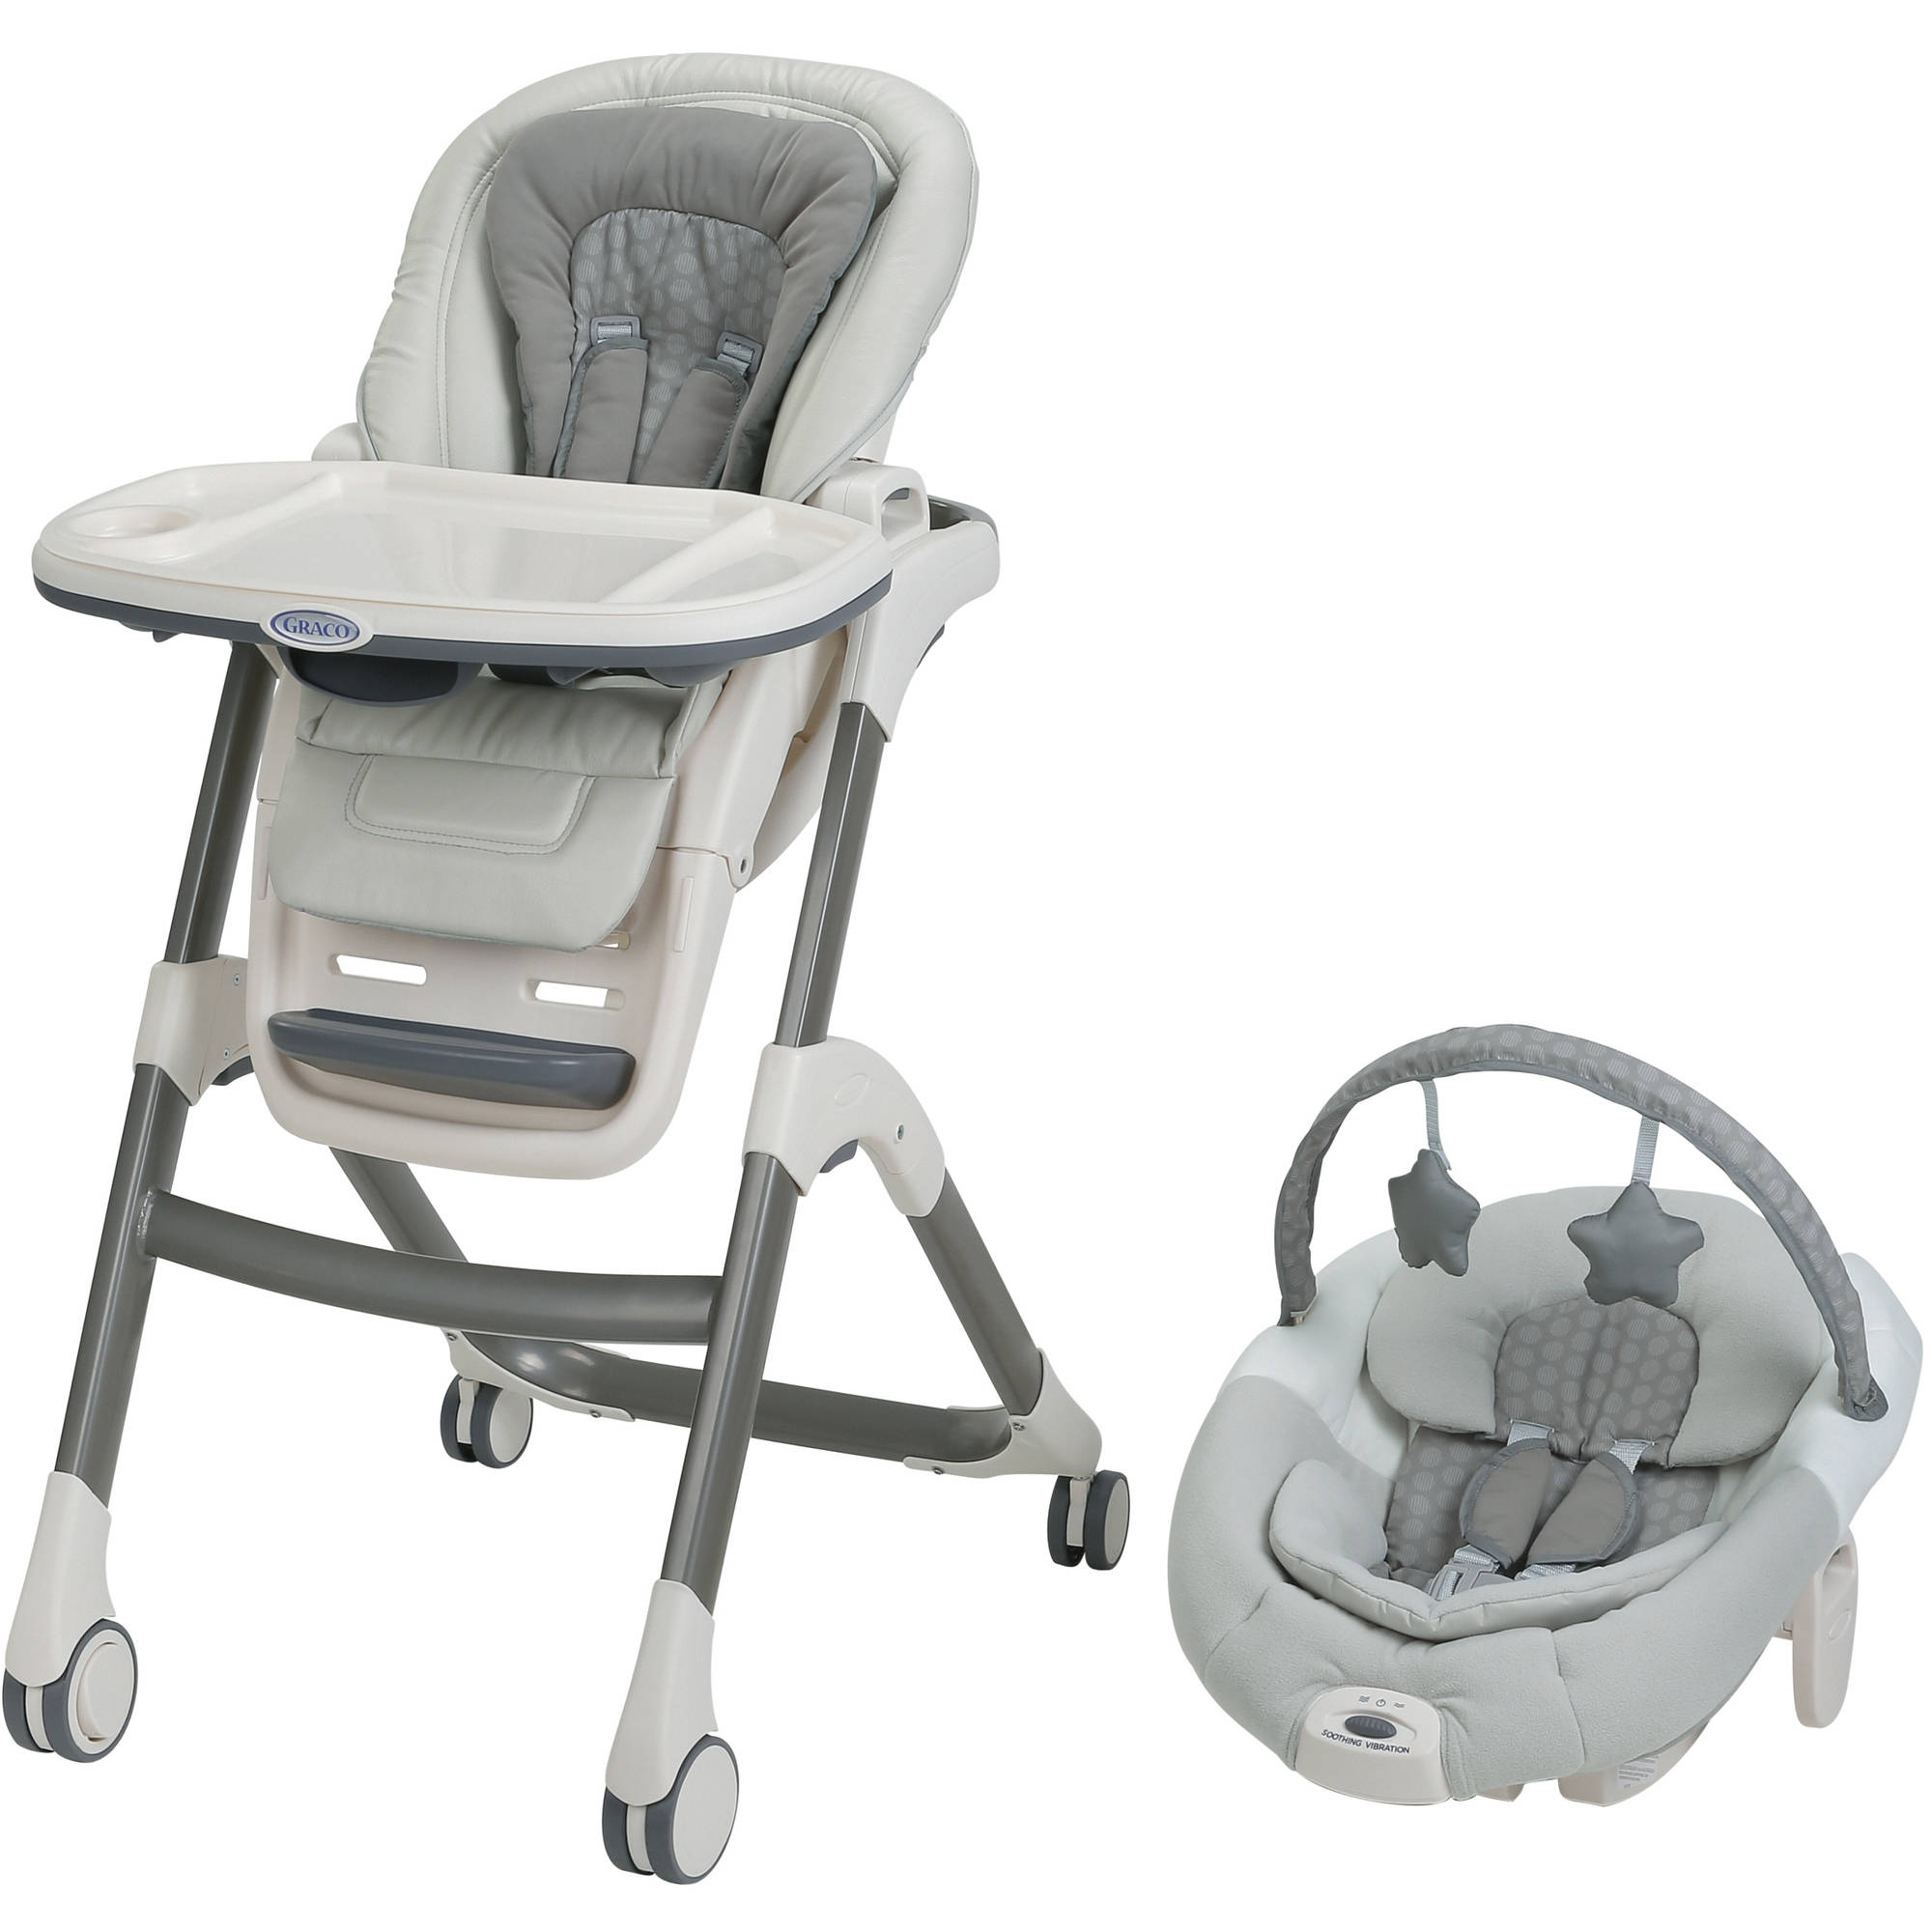 Graco Sous Chef 5-in-1 Seating System High Chair, Davis by Graco